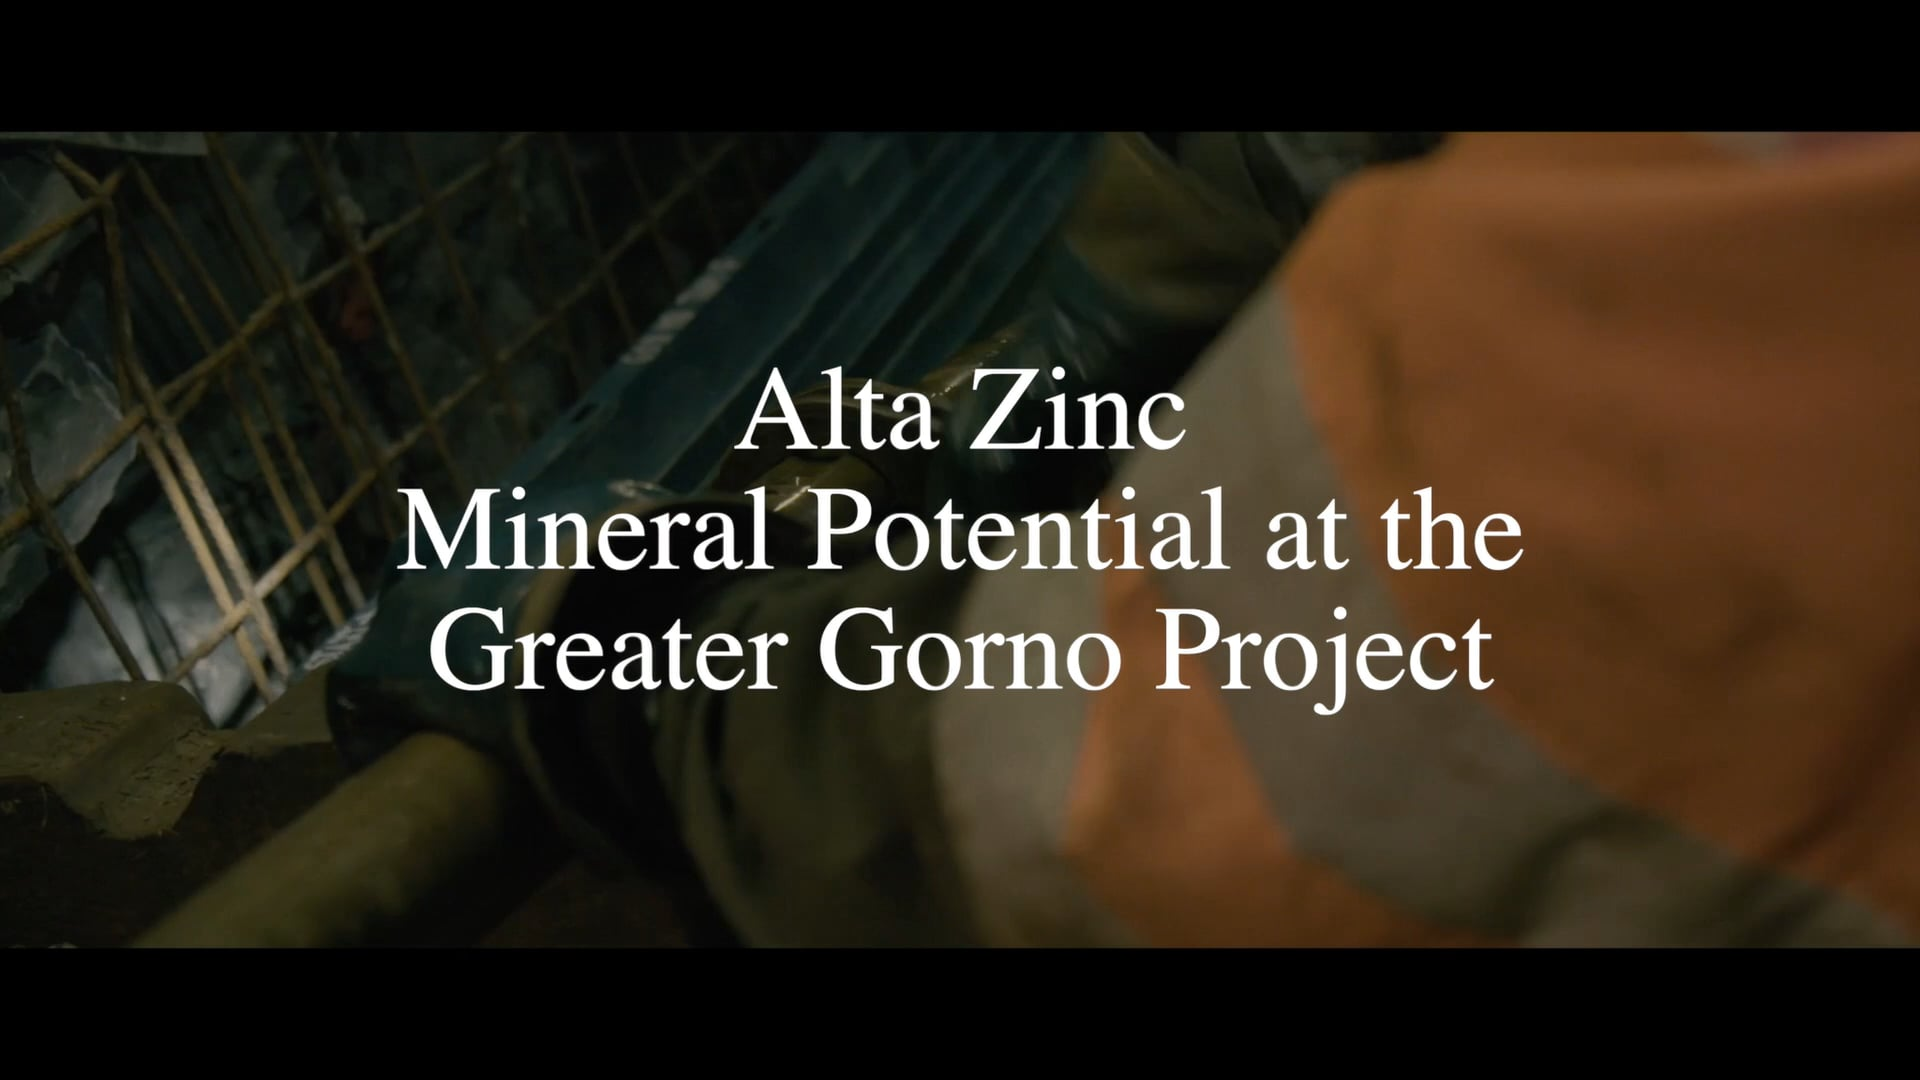 Alta Zinc: Mineral Potential at the Greater Gorno Project